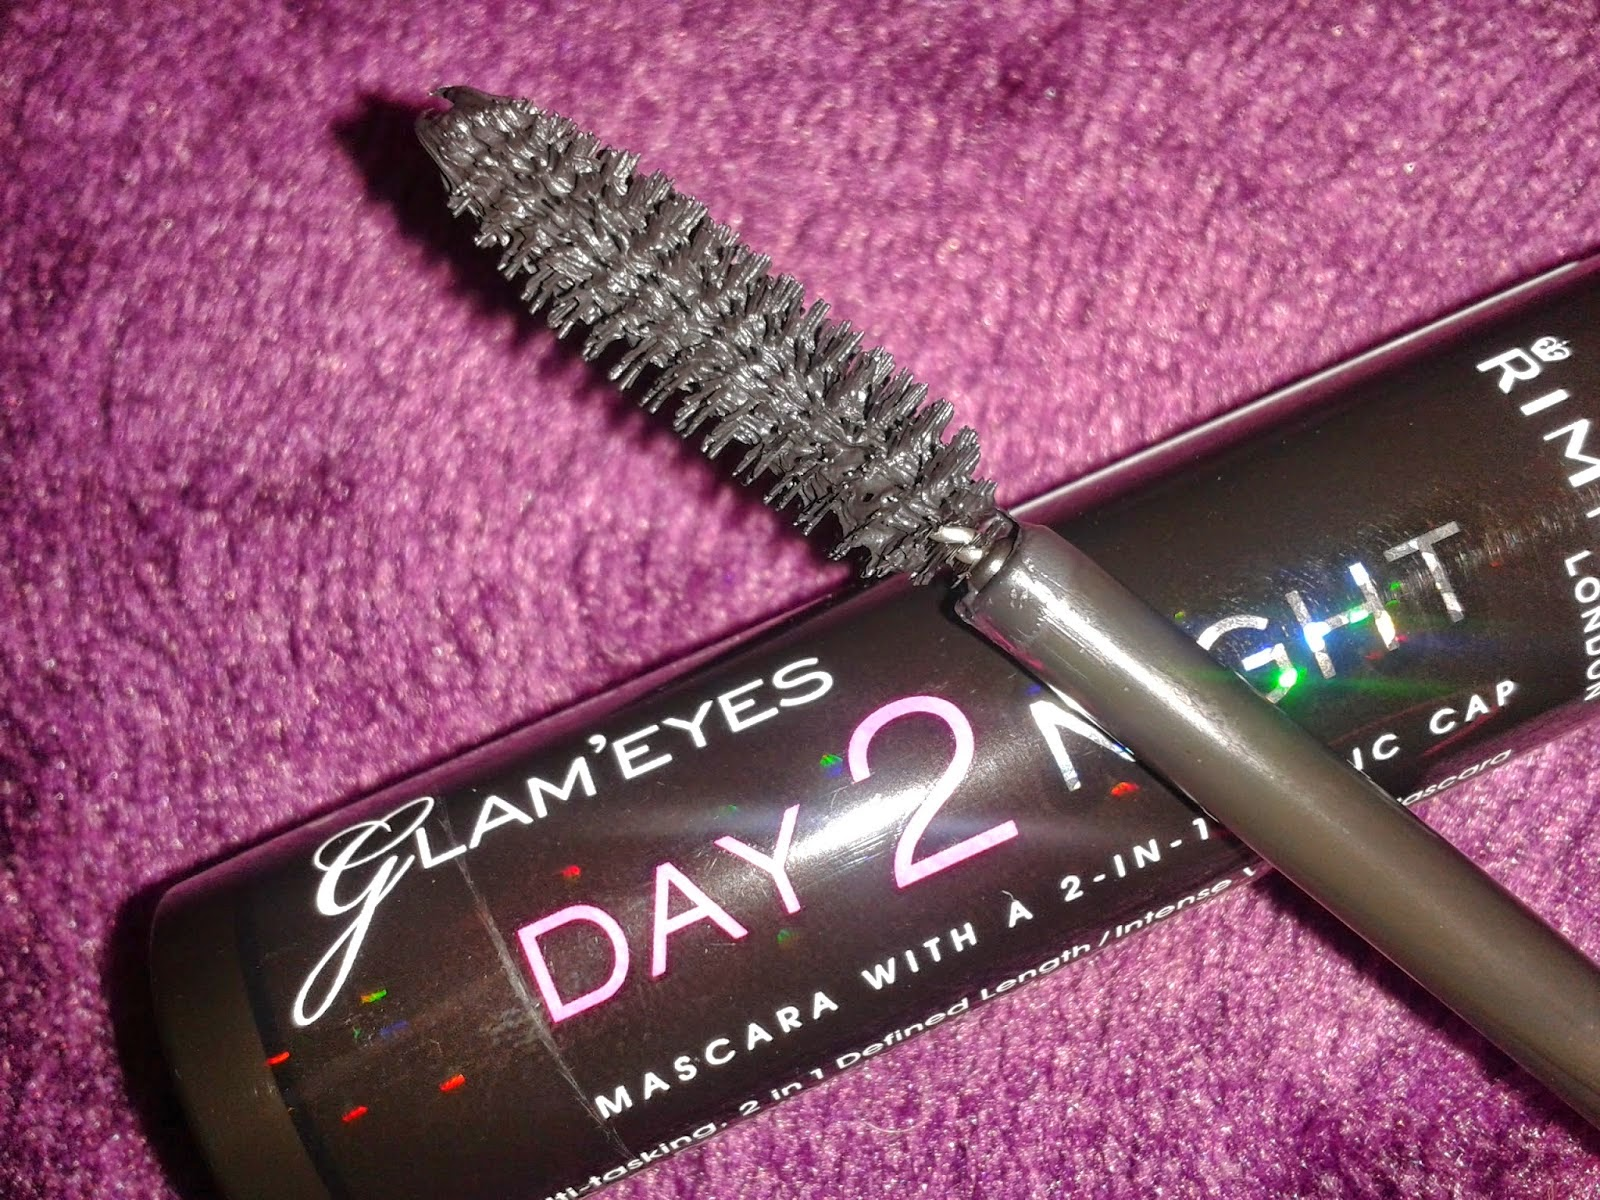 It drys pretty quickly, and doesn't flake throughout the day. At €10.19 in Boots, it's definitely worth a try :)